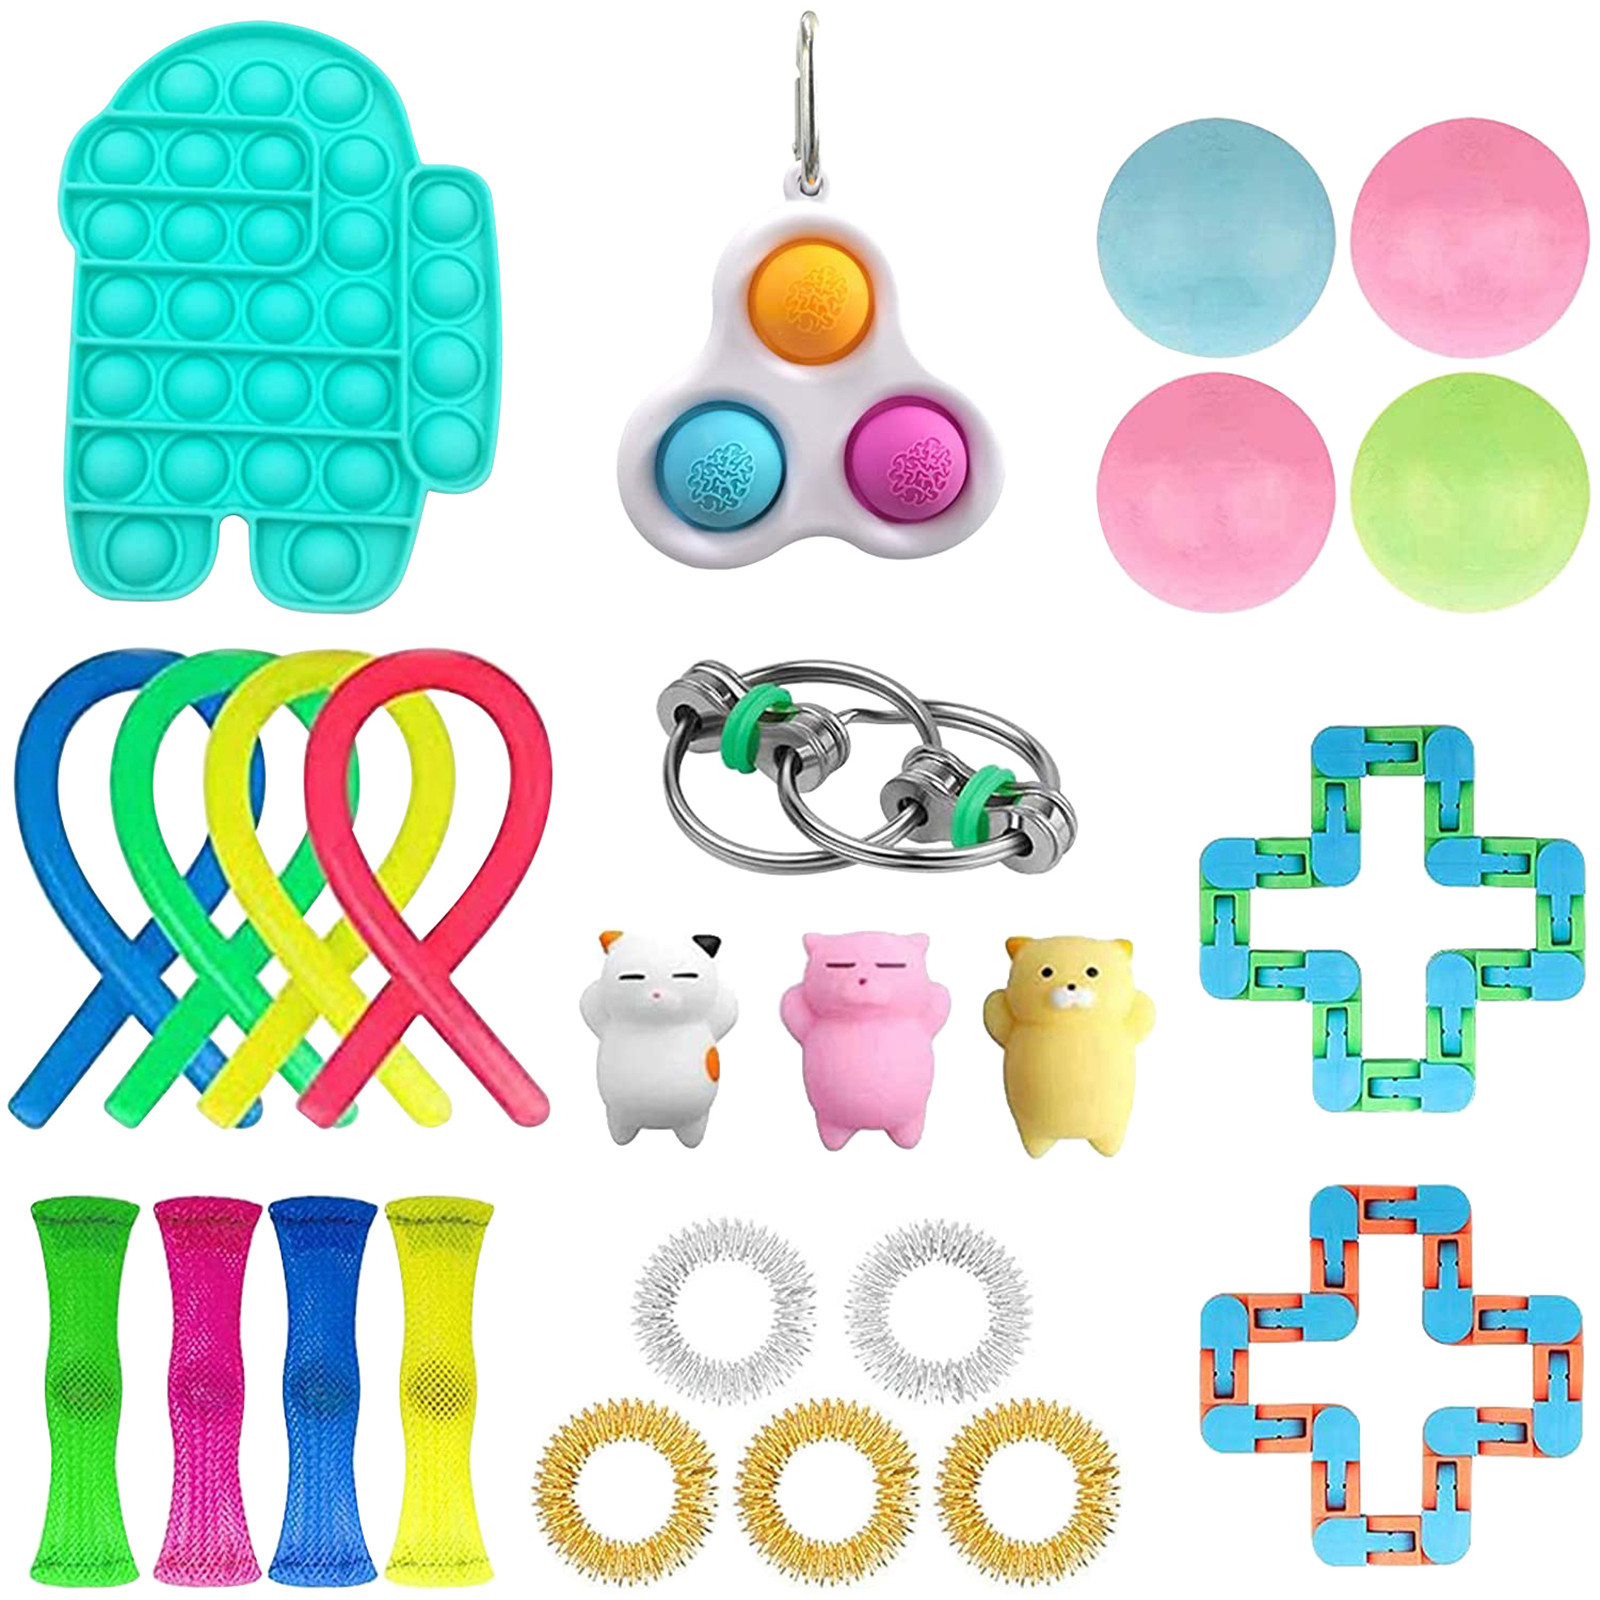 Fidget-Toys Strings Anti-Stress-Set Gift-Pack Relief Sensory Squishy Pop-It Adults Stretchy img4